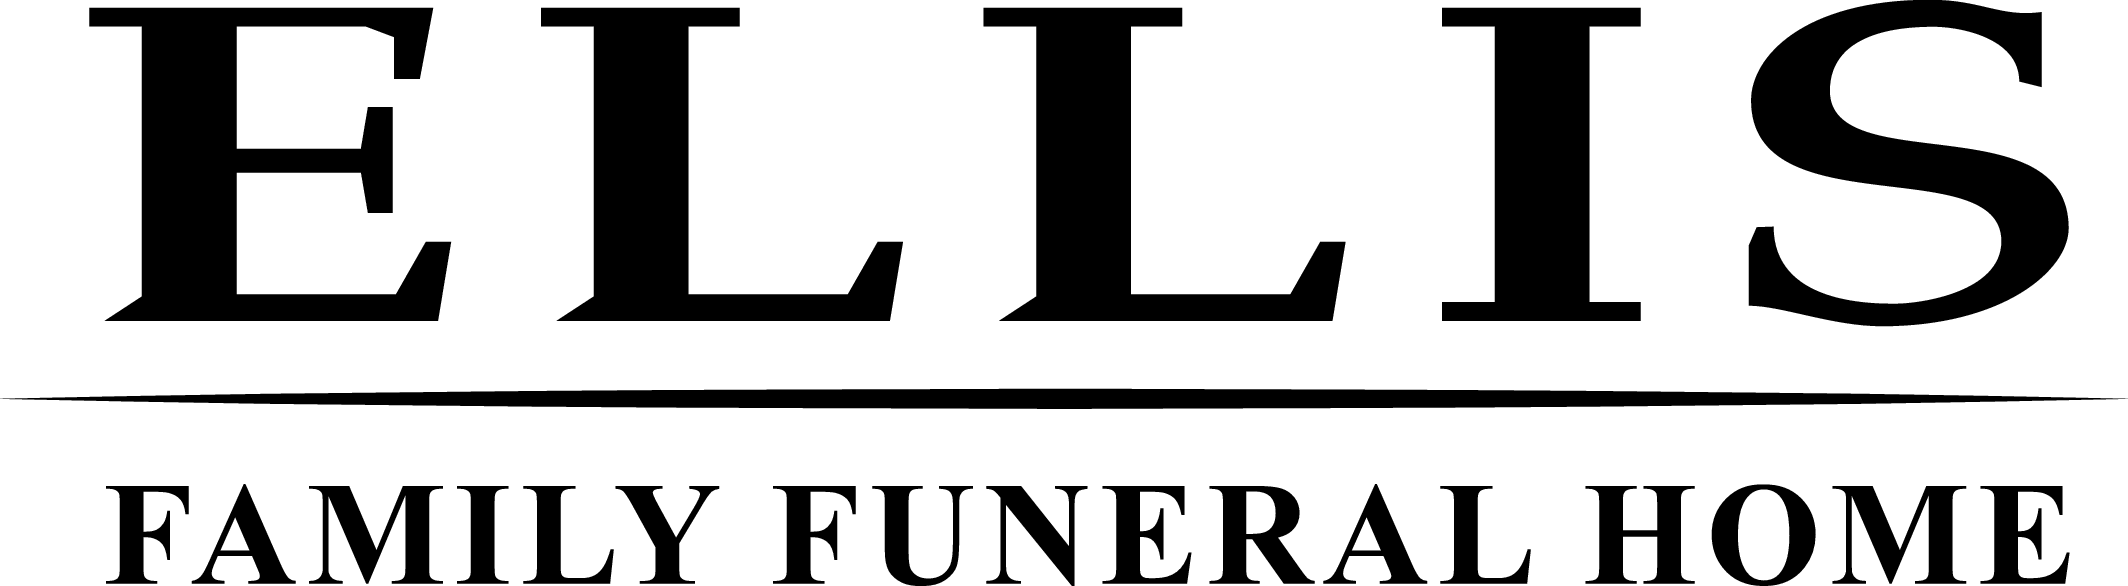 Ellis Family Funeral Home